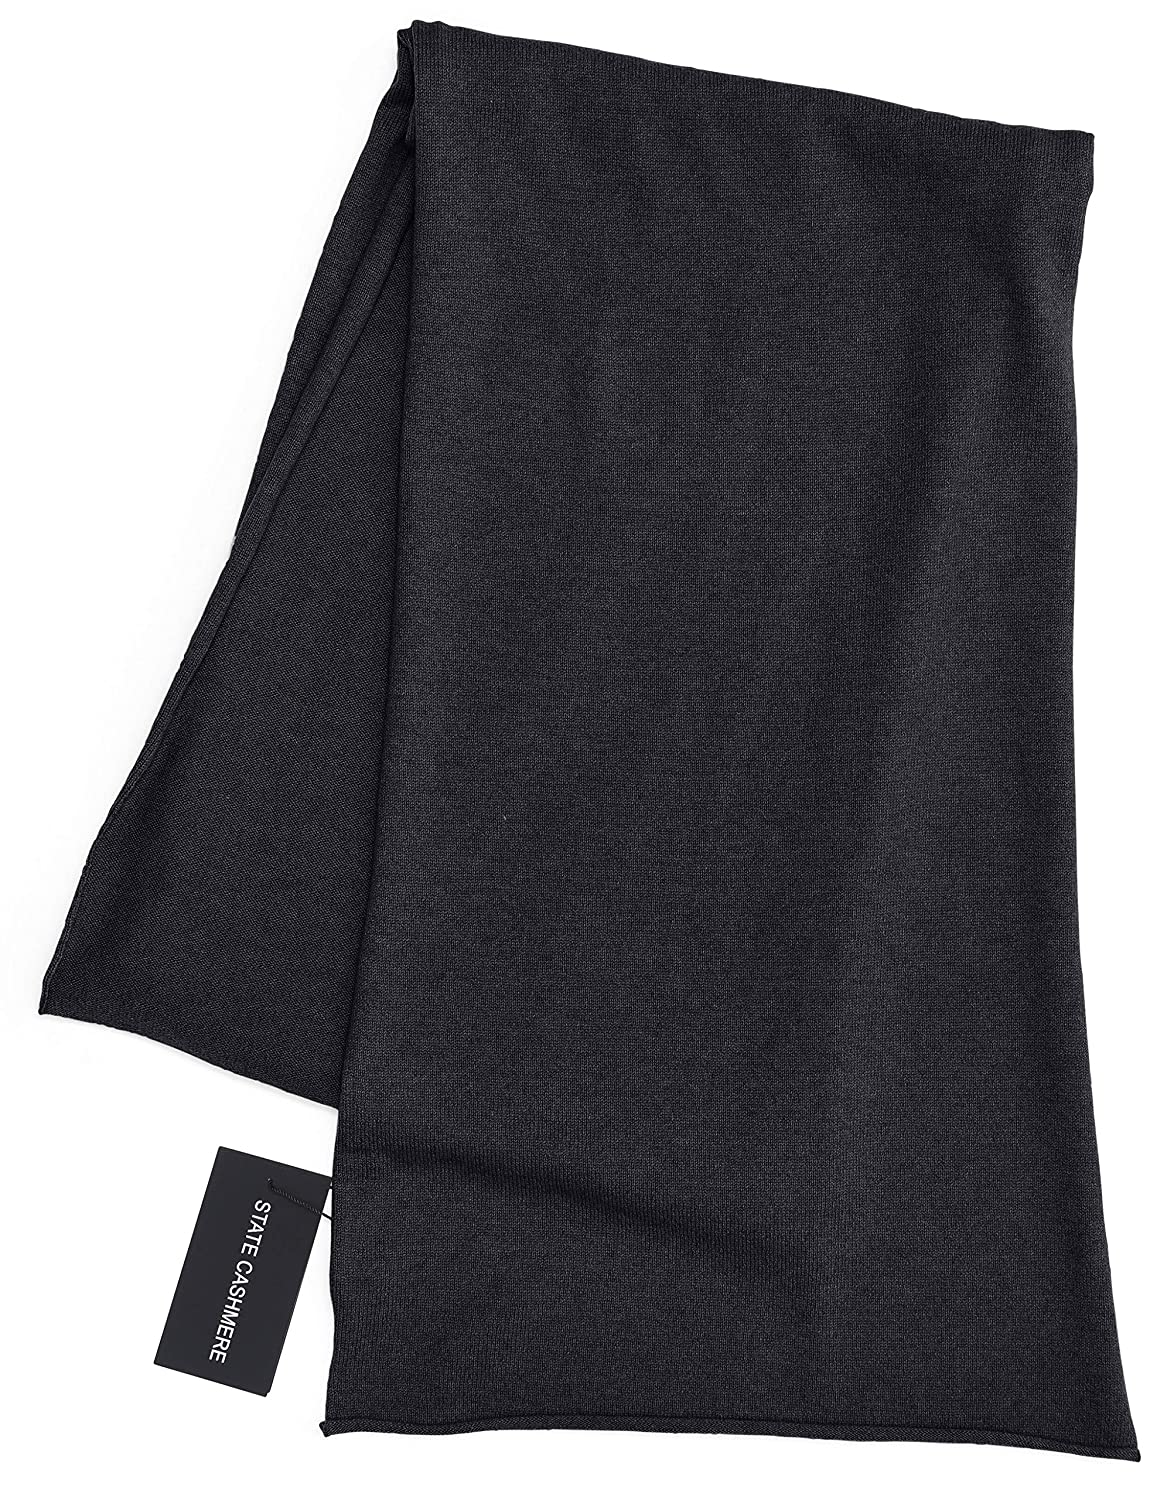 Black State Cashmere 100% Cashmere Solid color Scarf Wrap, Soft and Cozy 80 x13.5